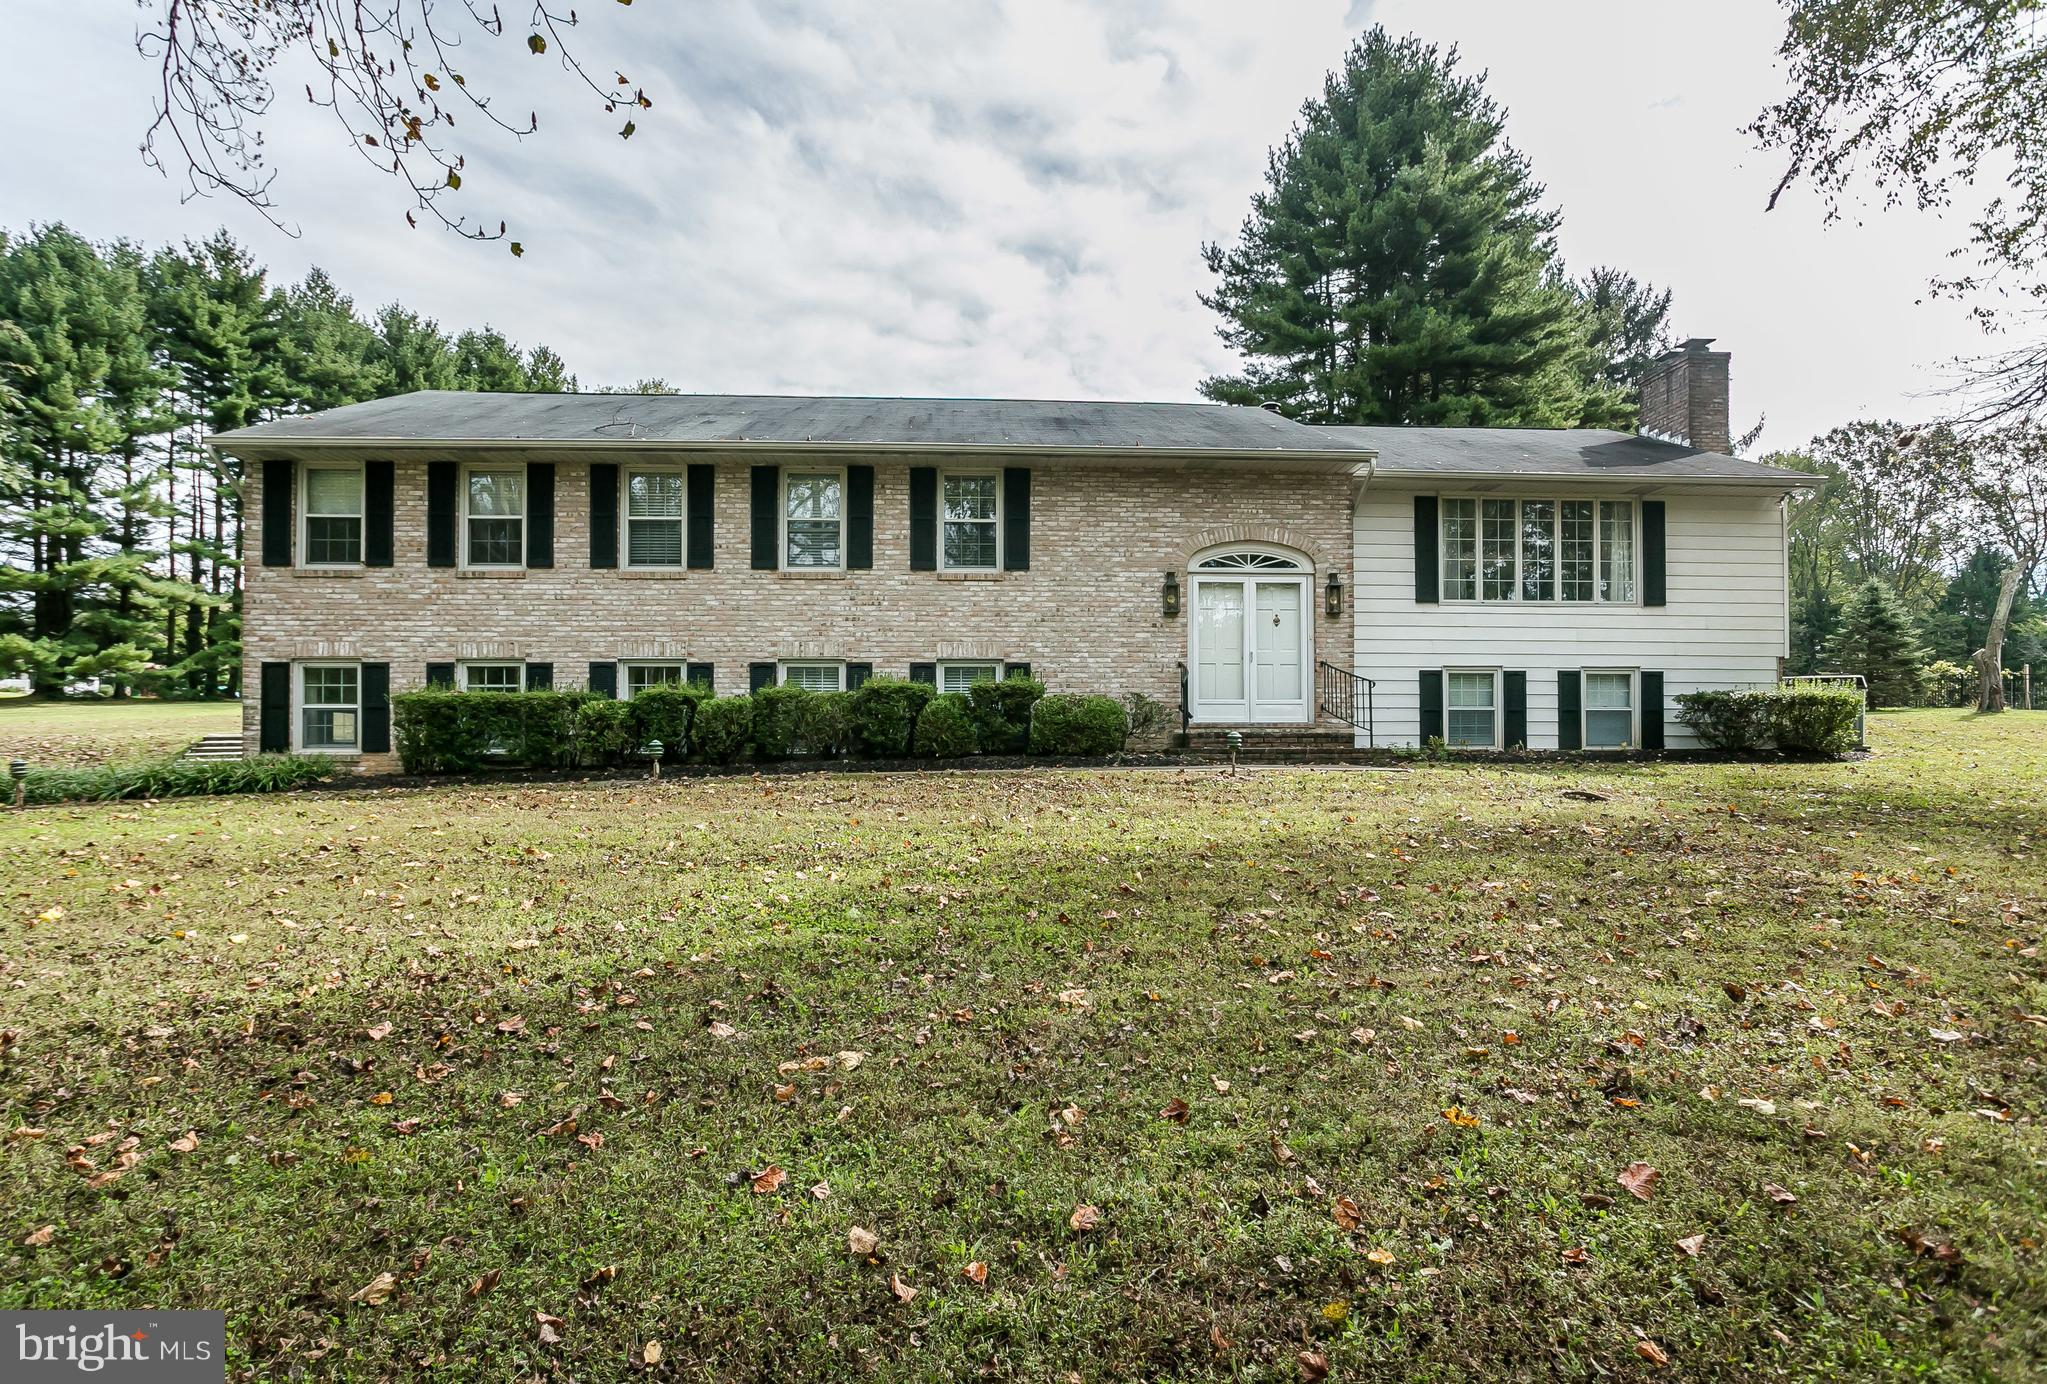 4414 LANGTRY DRIVE, GLEN ARM, MD 21057